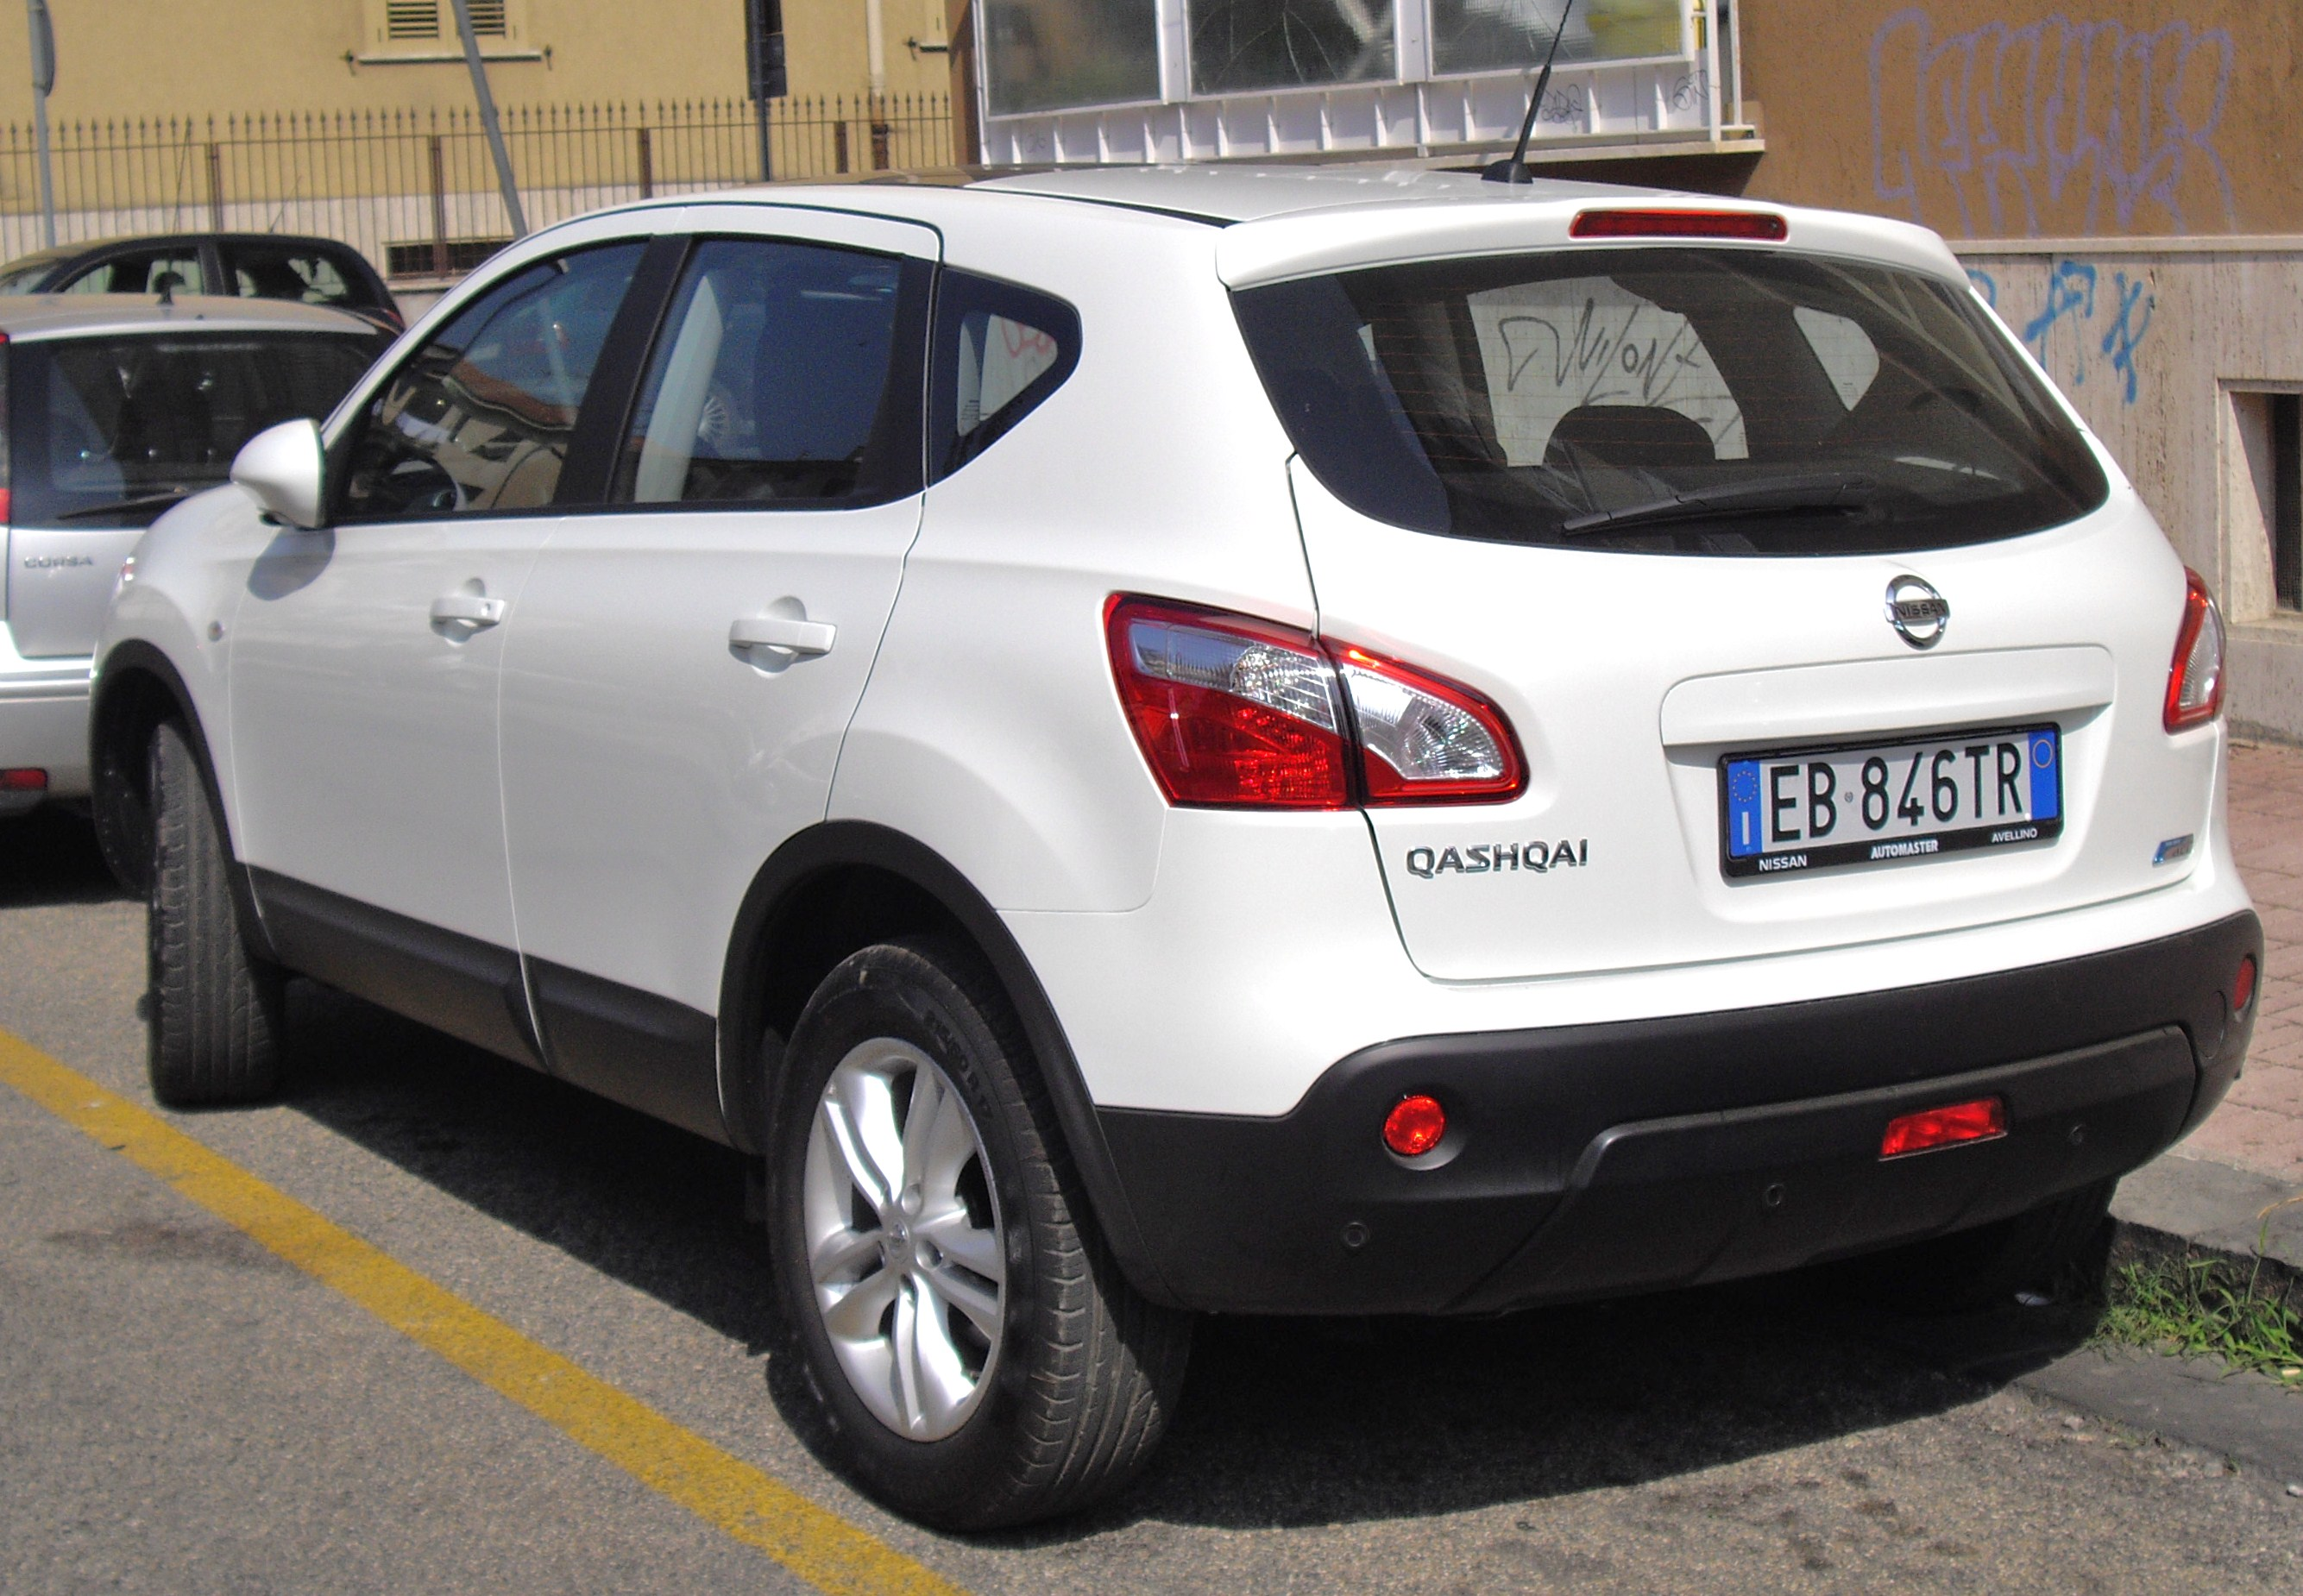 2010 nissan qashqai pictures information and specs. Black Bedroom Furniture Sets. Home Design Ideas